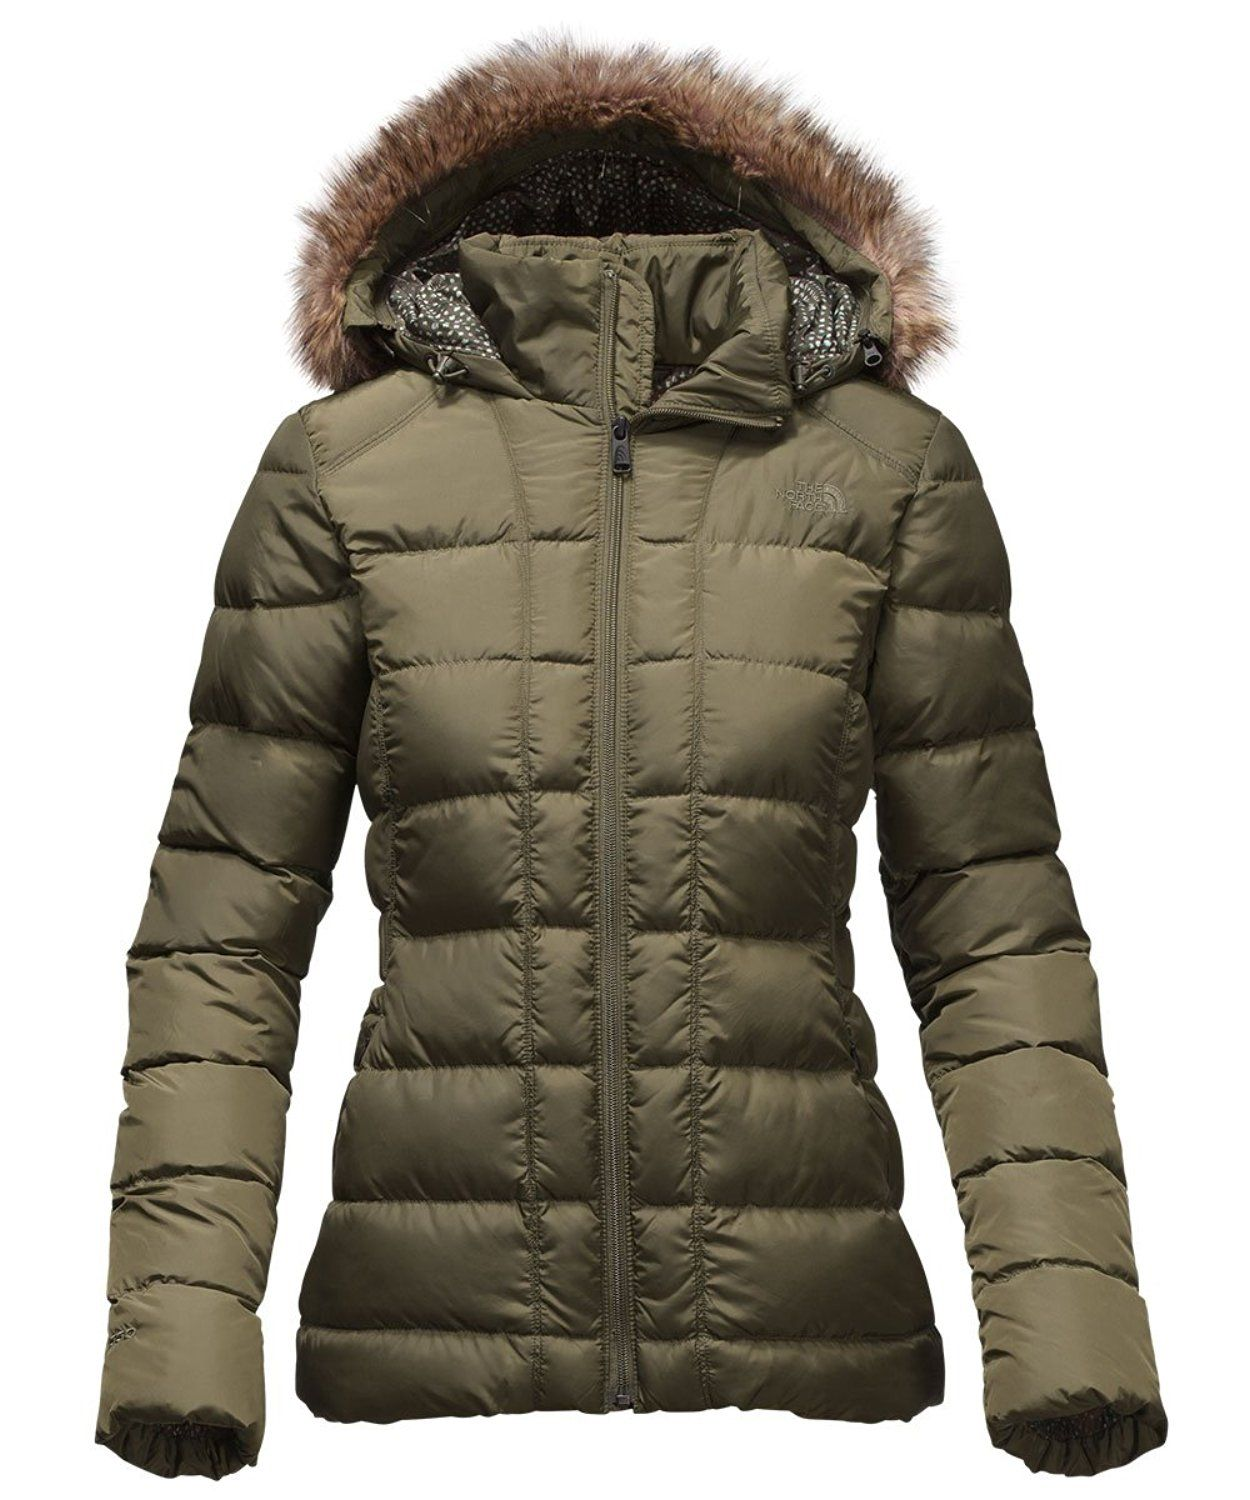 Women's The North Face Gotham Down Jacket Coveted, warm 550-fill ...